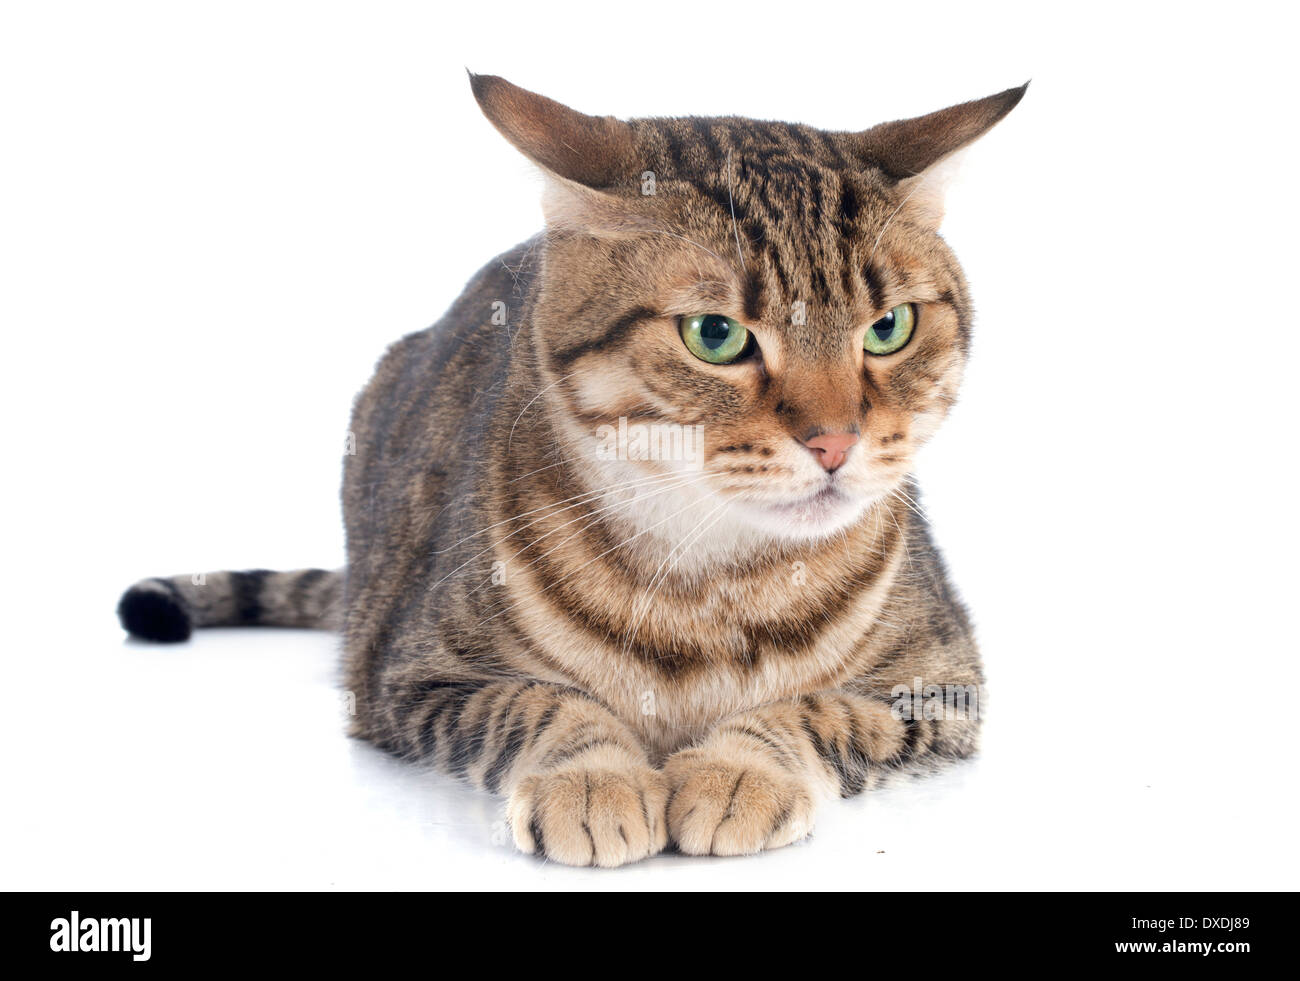 portrait of a purebred bengal cat on a white background - Stock Image